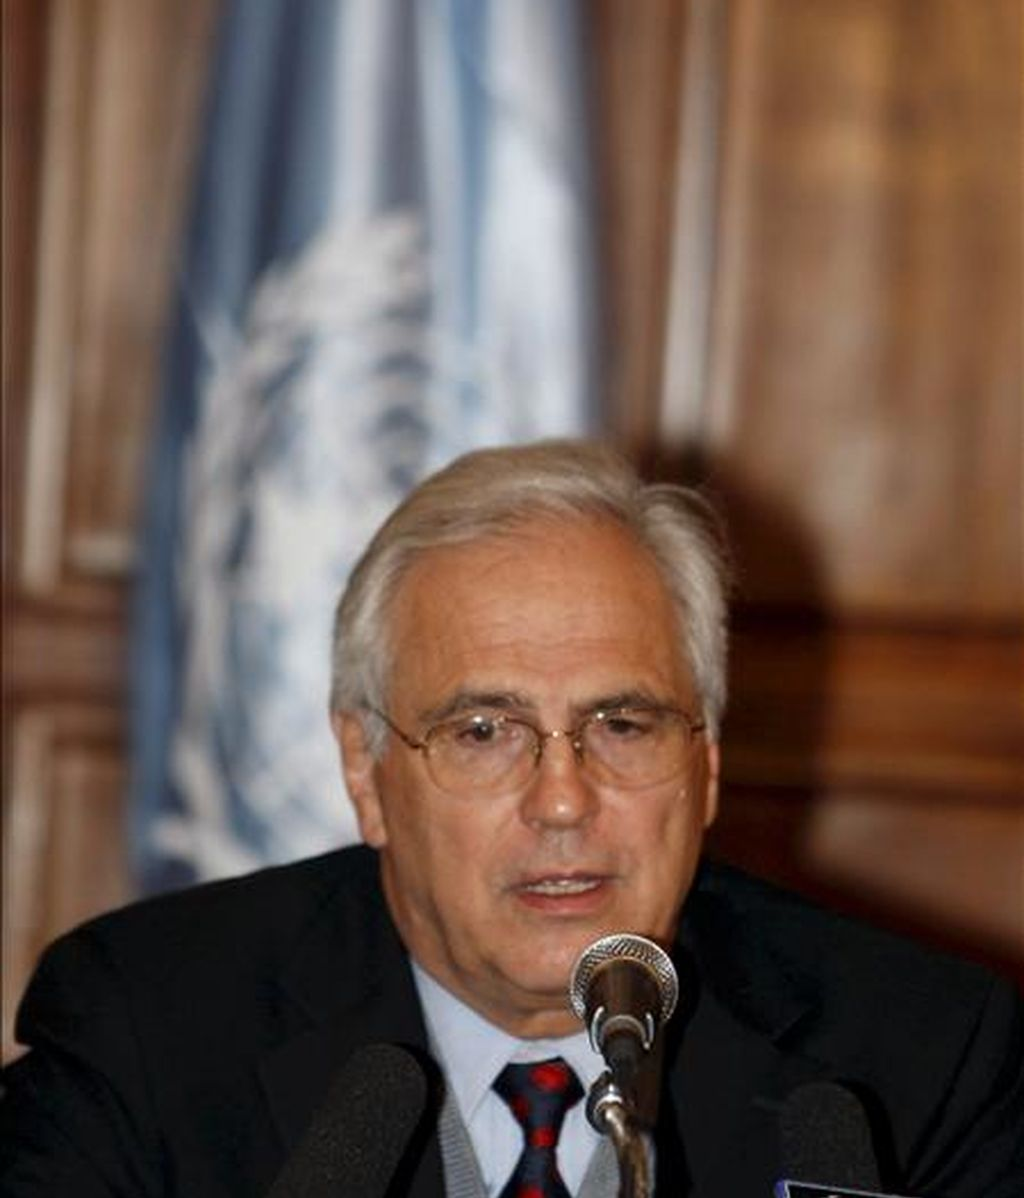 El emisario especial de la ONU para el Sahara Occidental, Christopher Ross. EFE/Archivo